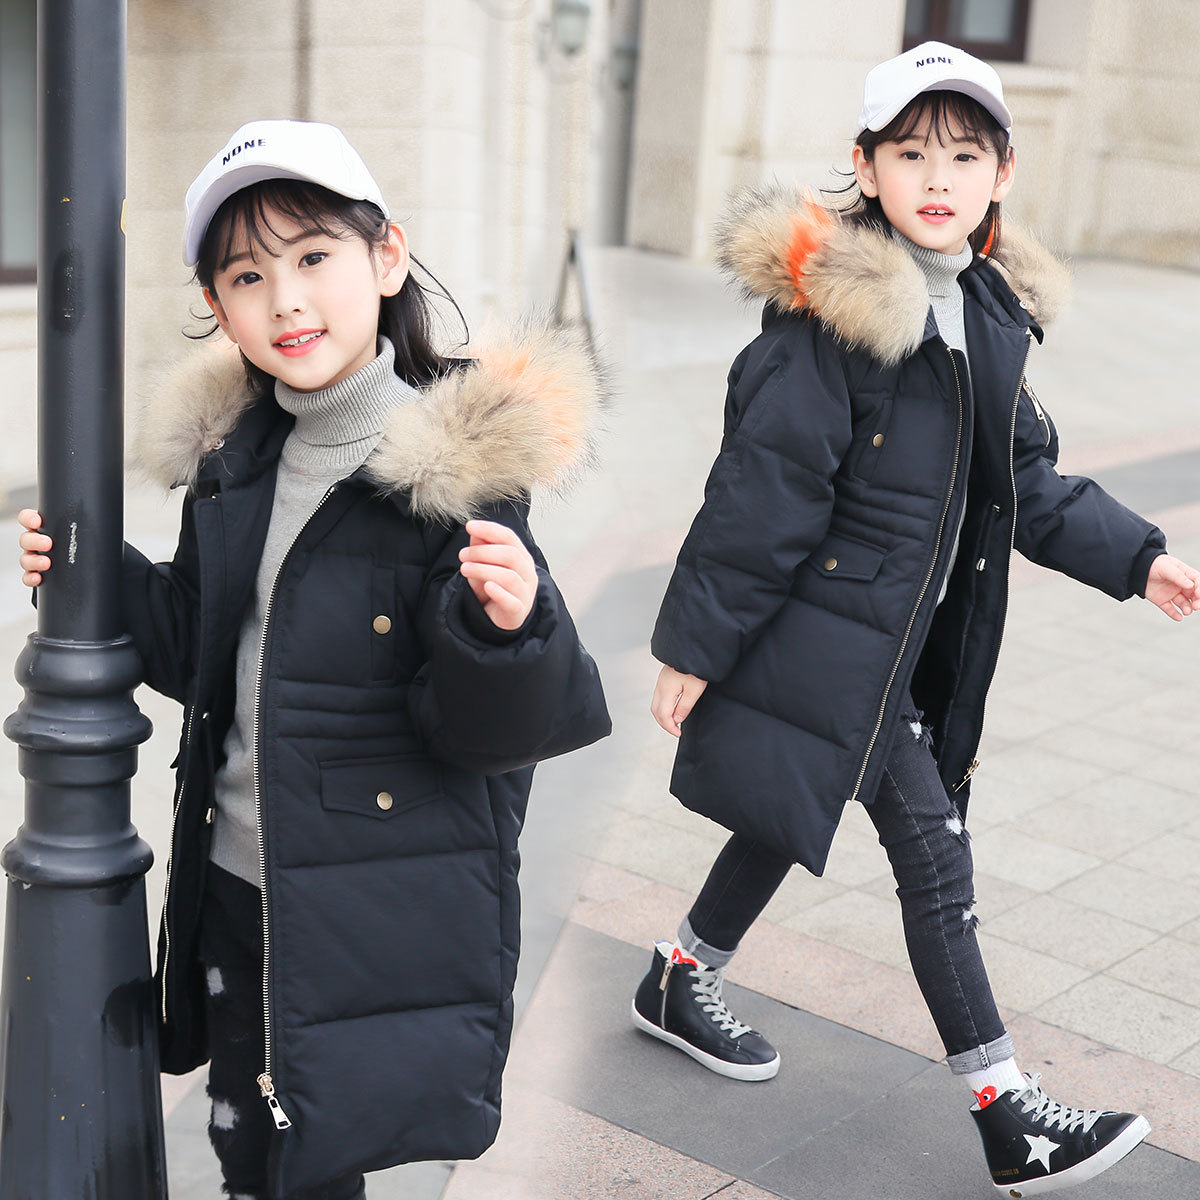 2018 Winter Down Jacket For Girl Warm Thicken Hooded Long Girls Winter Coat 7-14 Years Kids Outerwear Winterjas Meisjes 2015 new hot winter thicken warm woman down jacket coat parkas outerwear hooded splice mid long plus size 3xxxl luxury cold